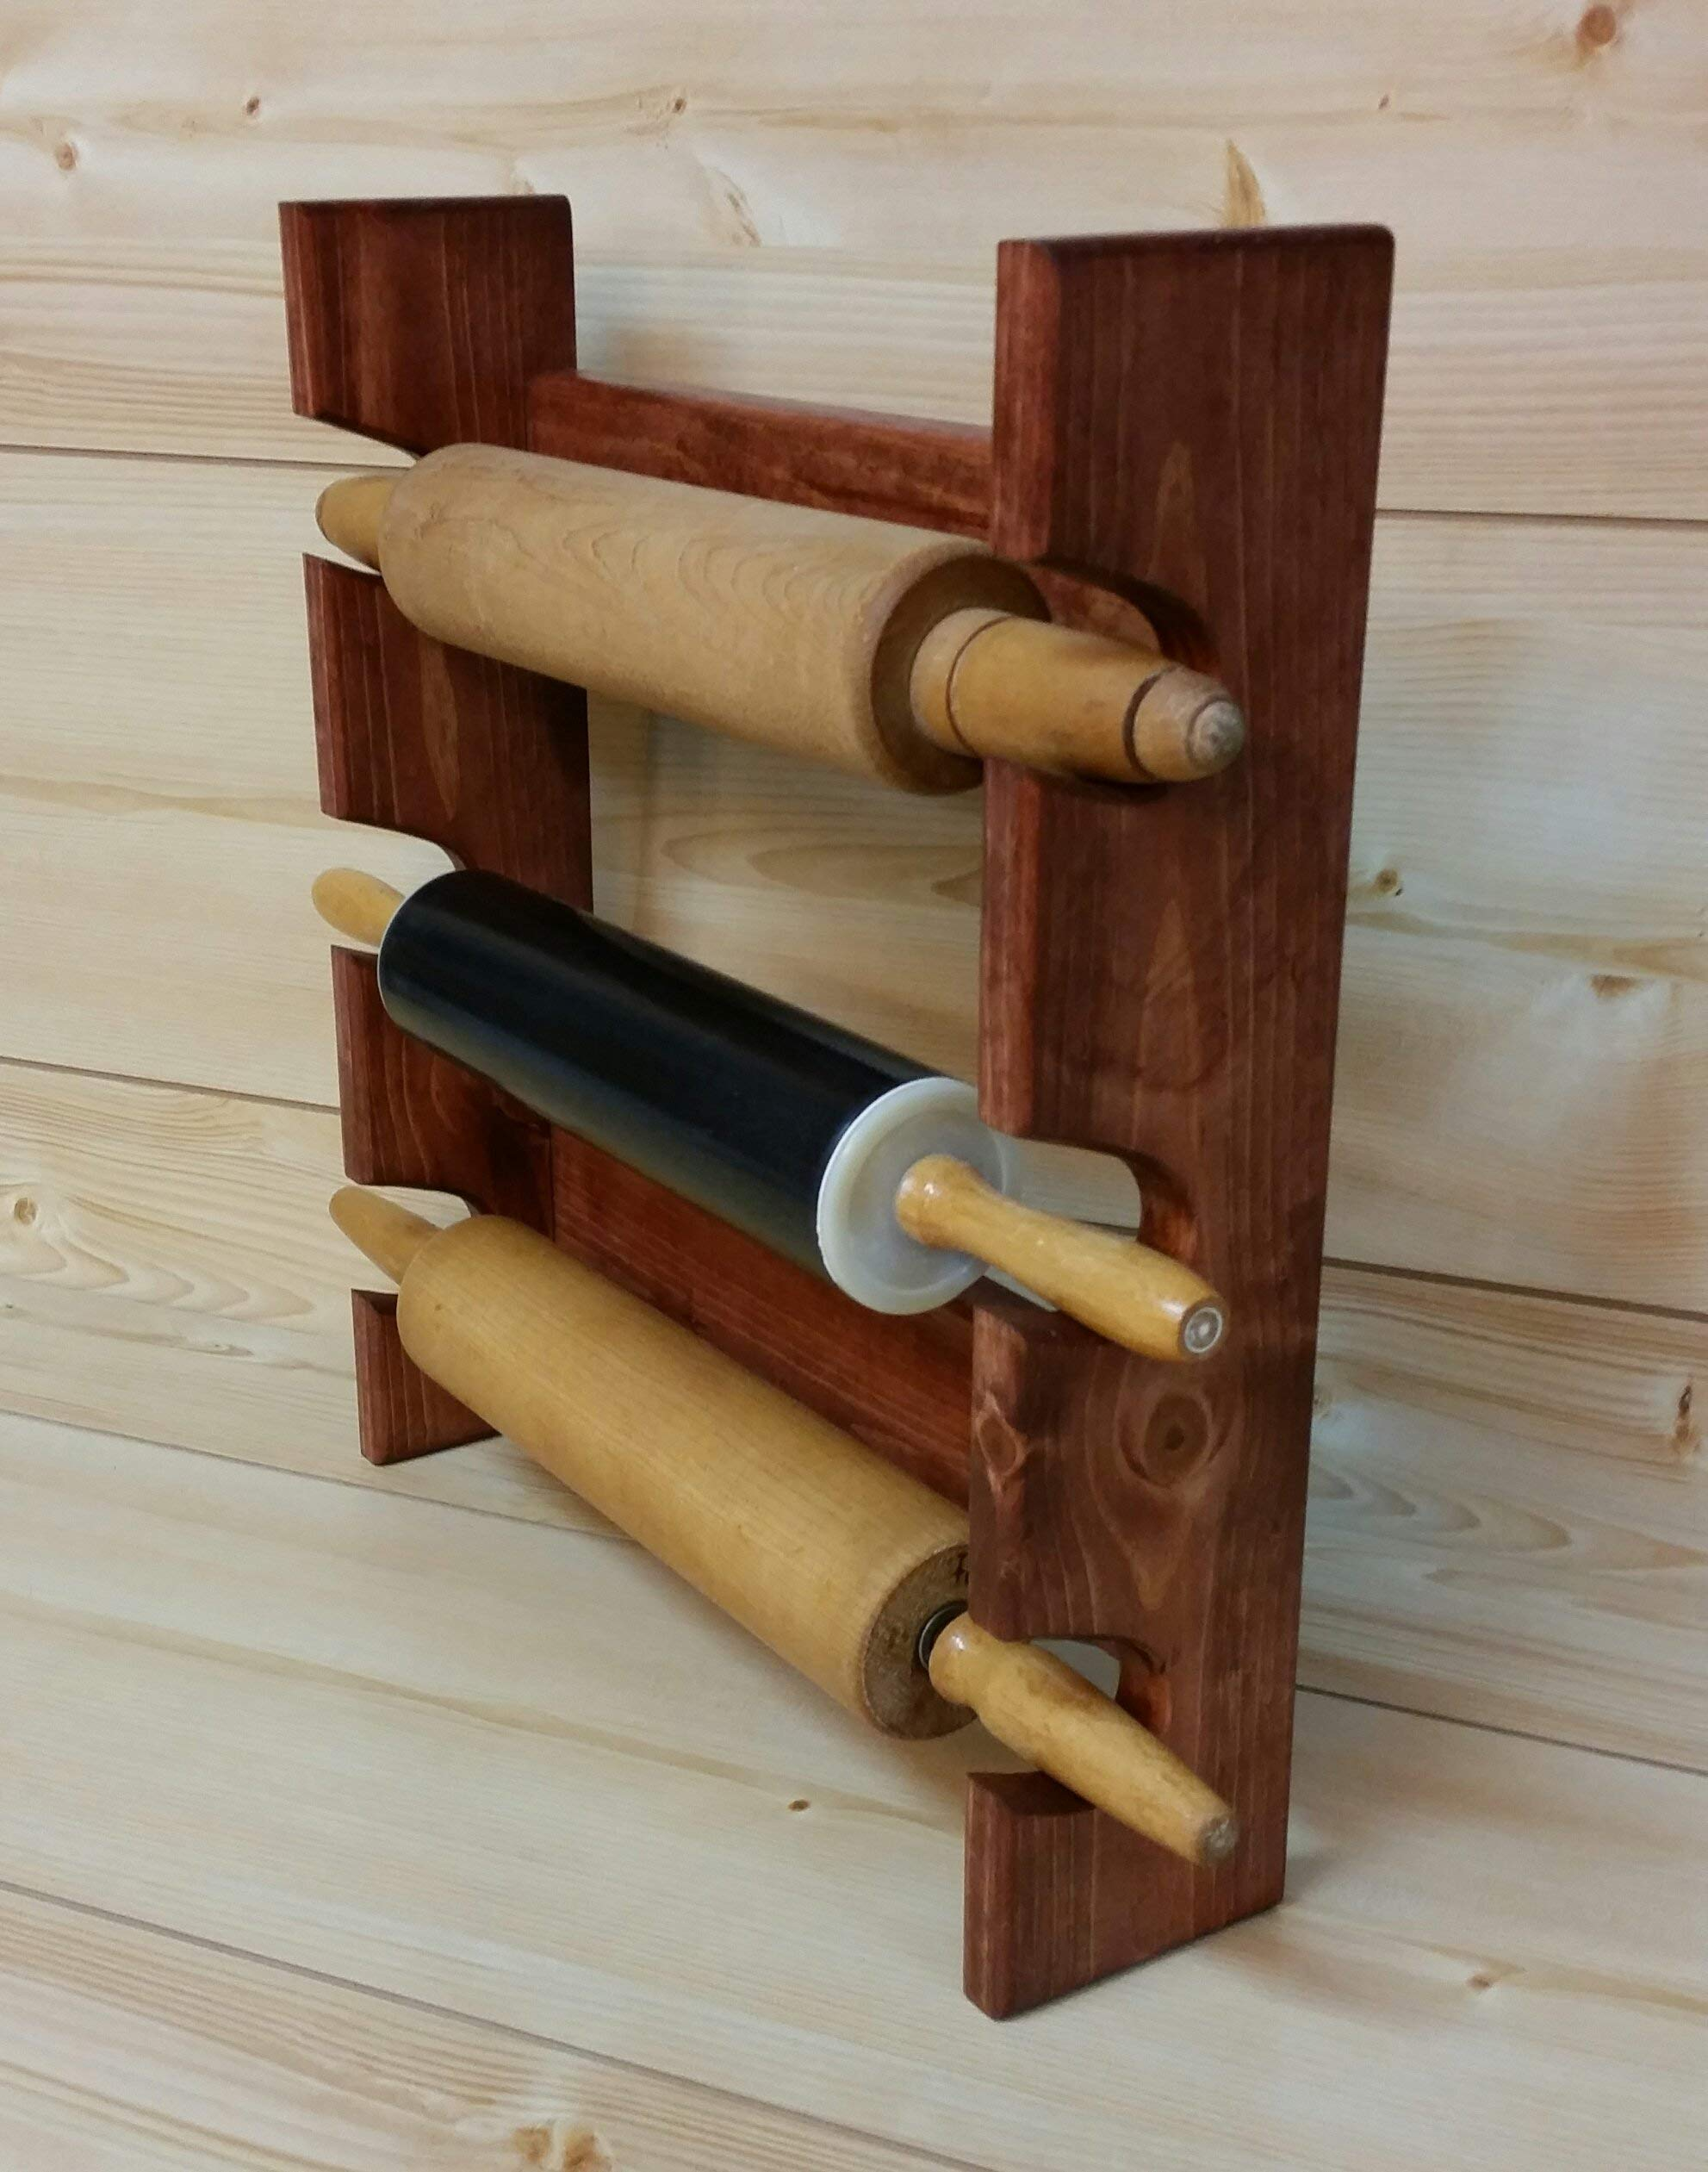 Rolling Pin Rack with Three Slots - Multiple Rolling Pin Rack - Rolling Pin Holder - Rolling Pin Storage